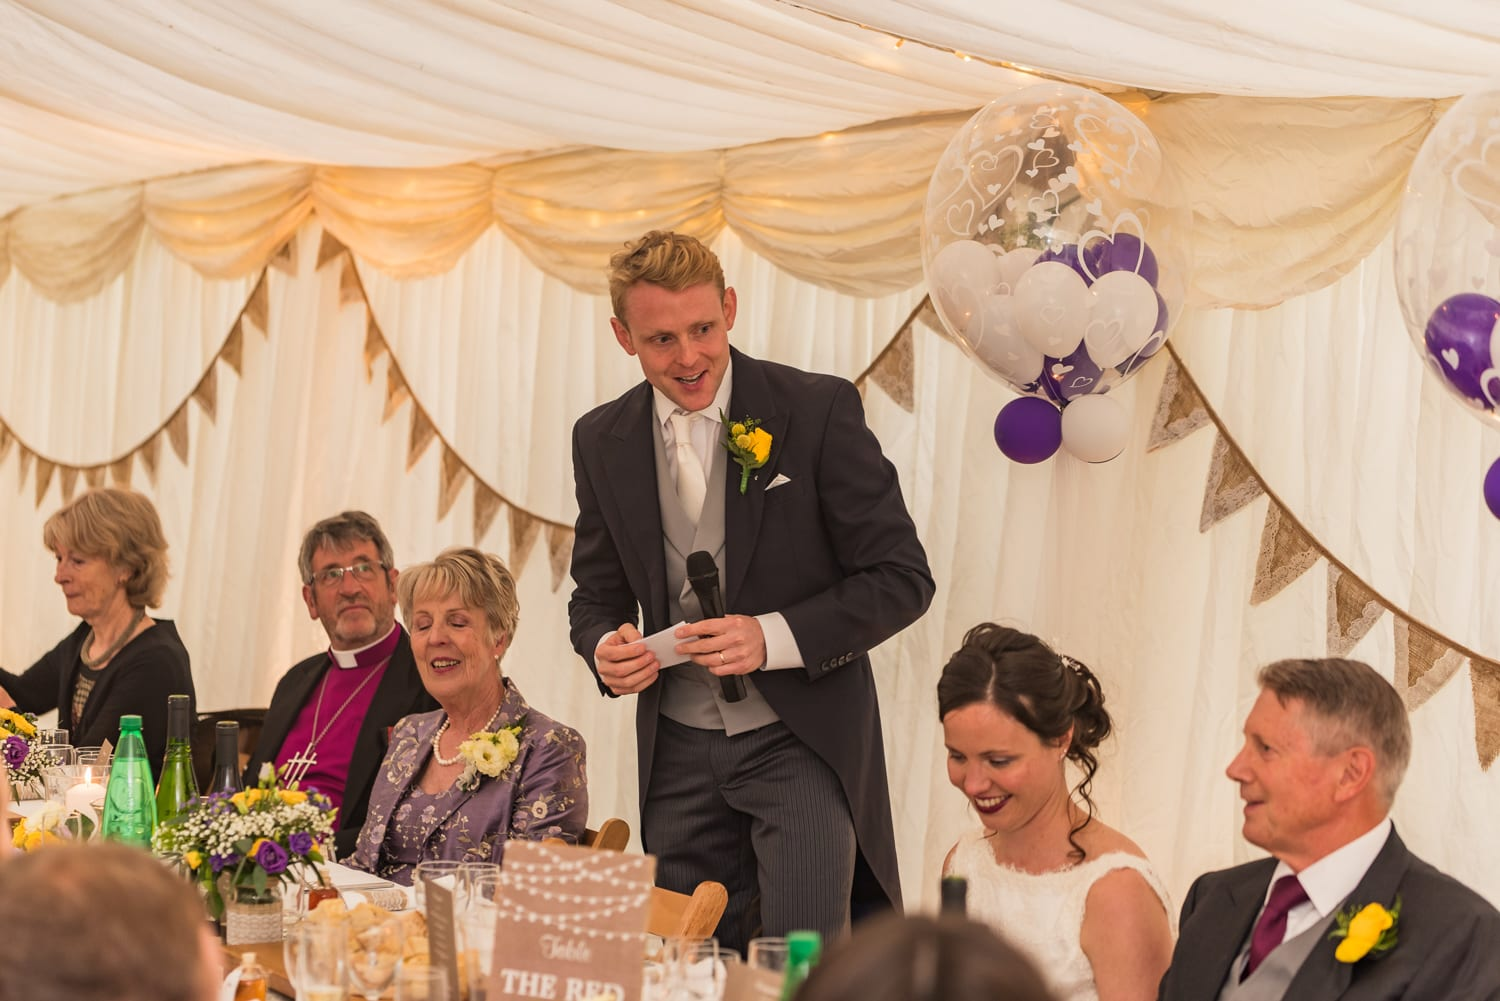 095-groom-speech_1.jpg